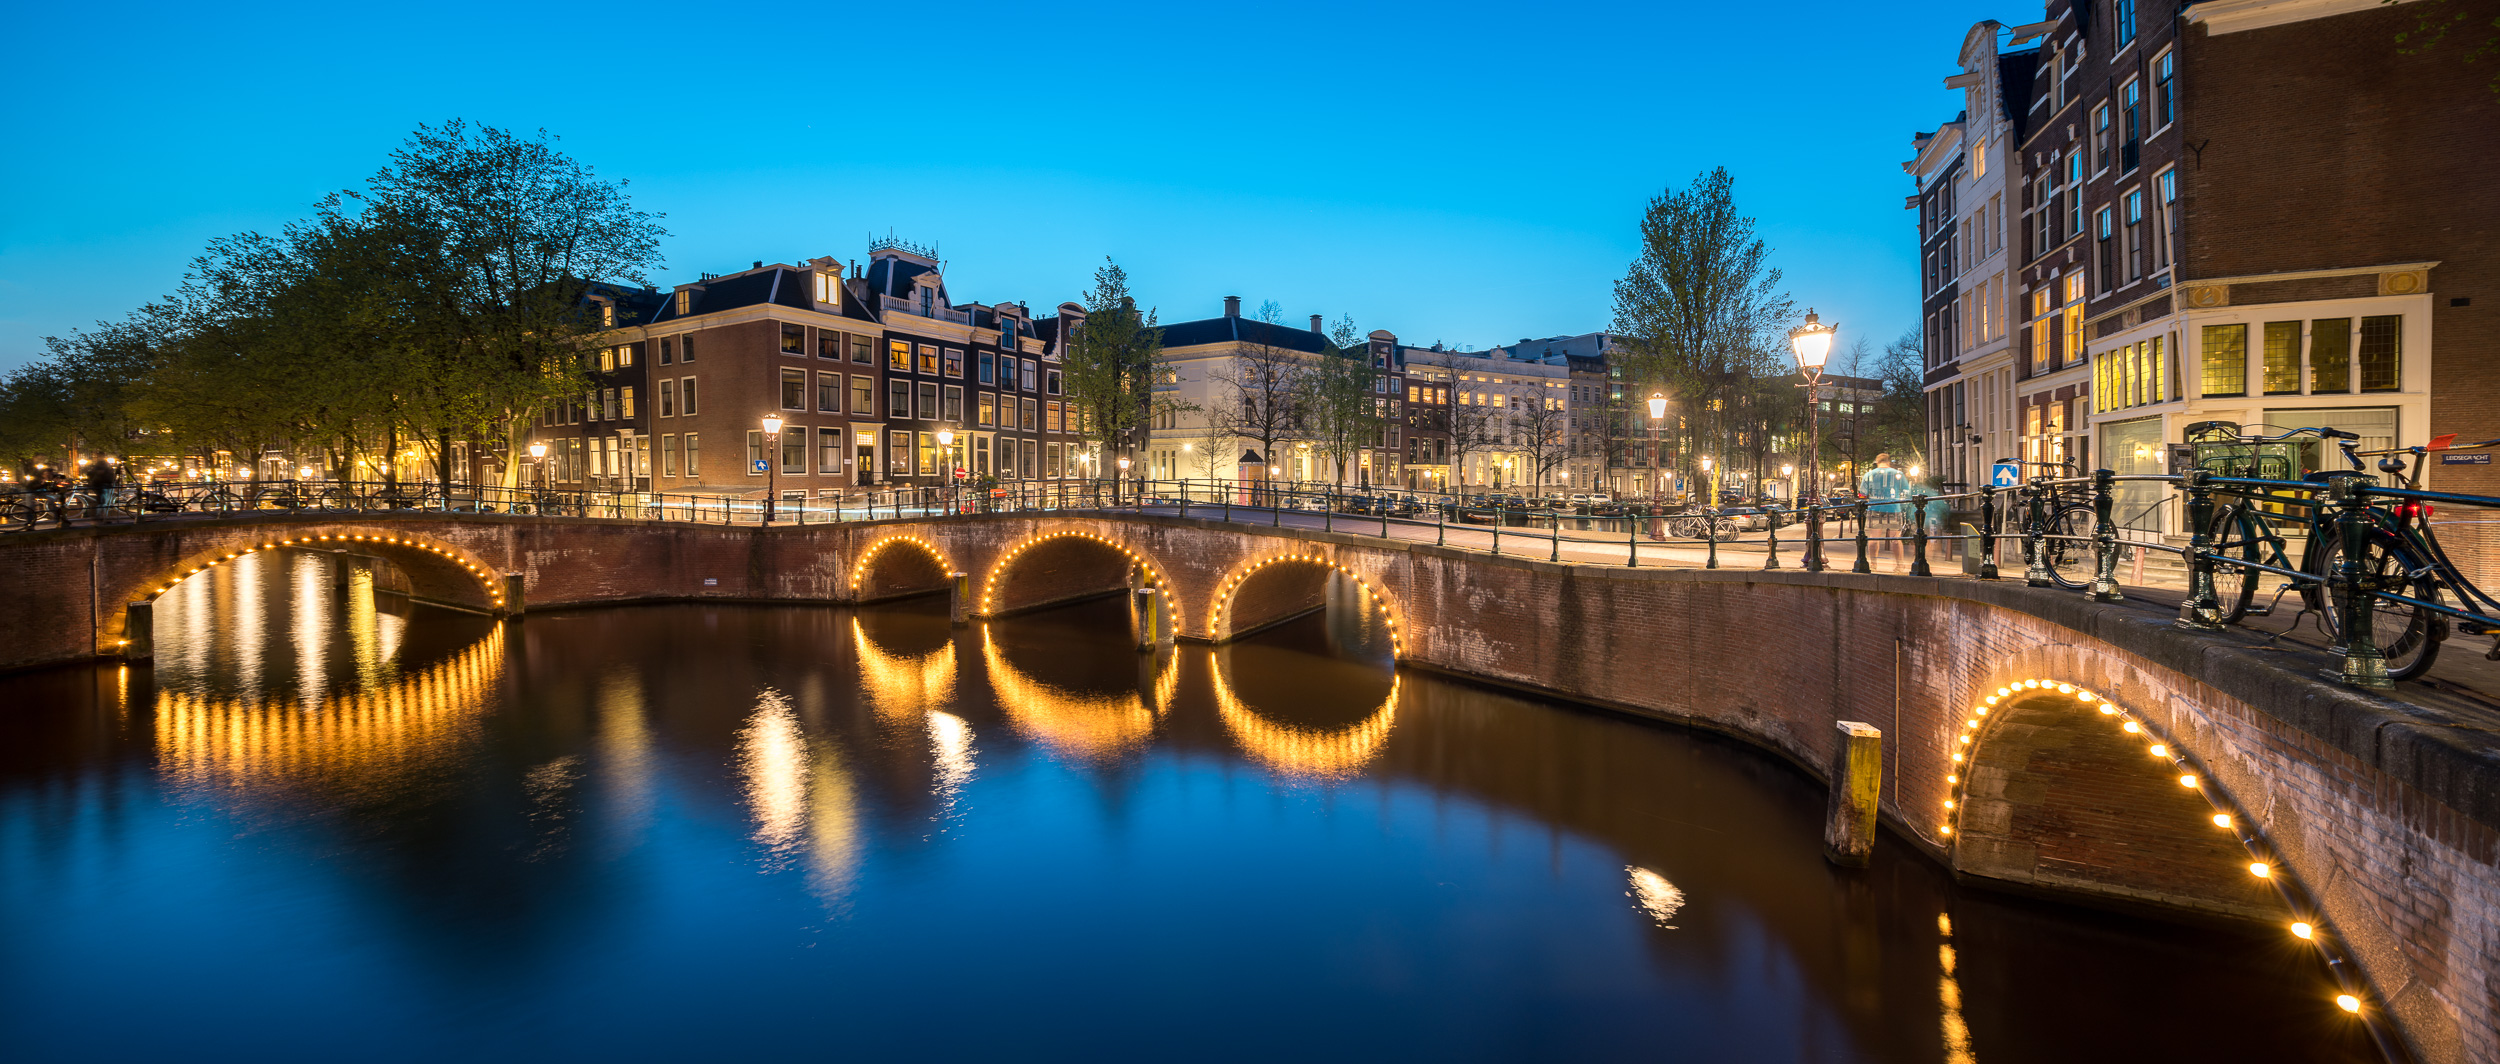 """Shift pano"" in the Amsterdam canals, shot with Sony A7R2 and Canon 17mm TS-E. Two photos stitched perfectly for a super wide field of view !"